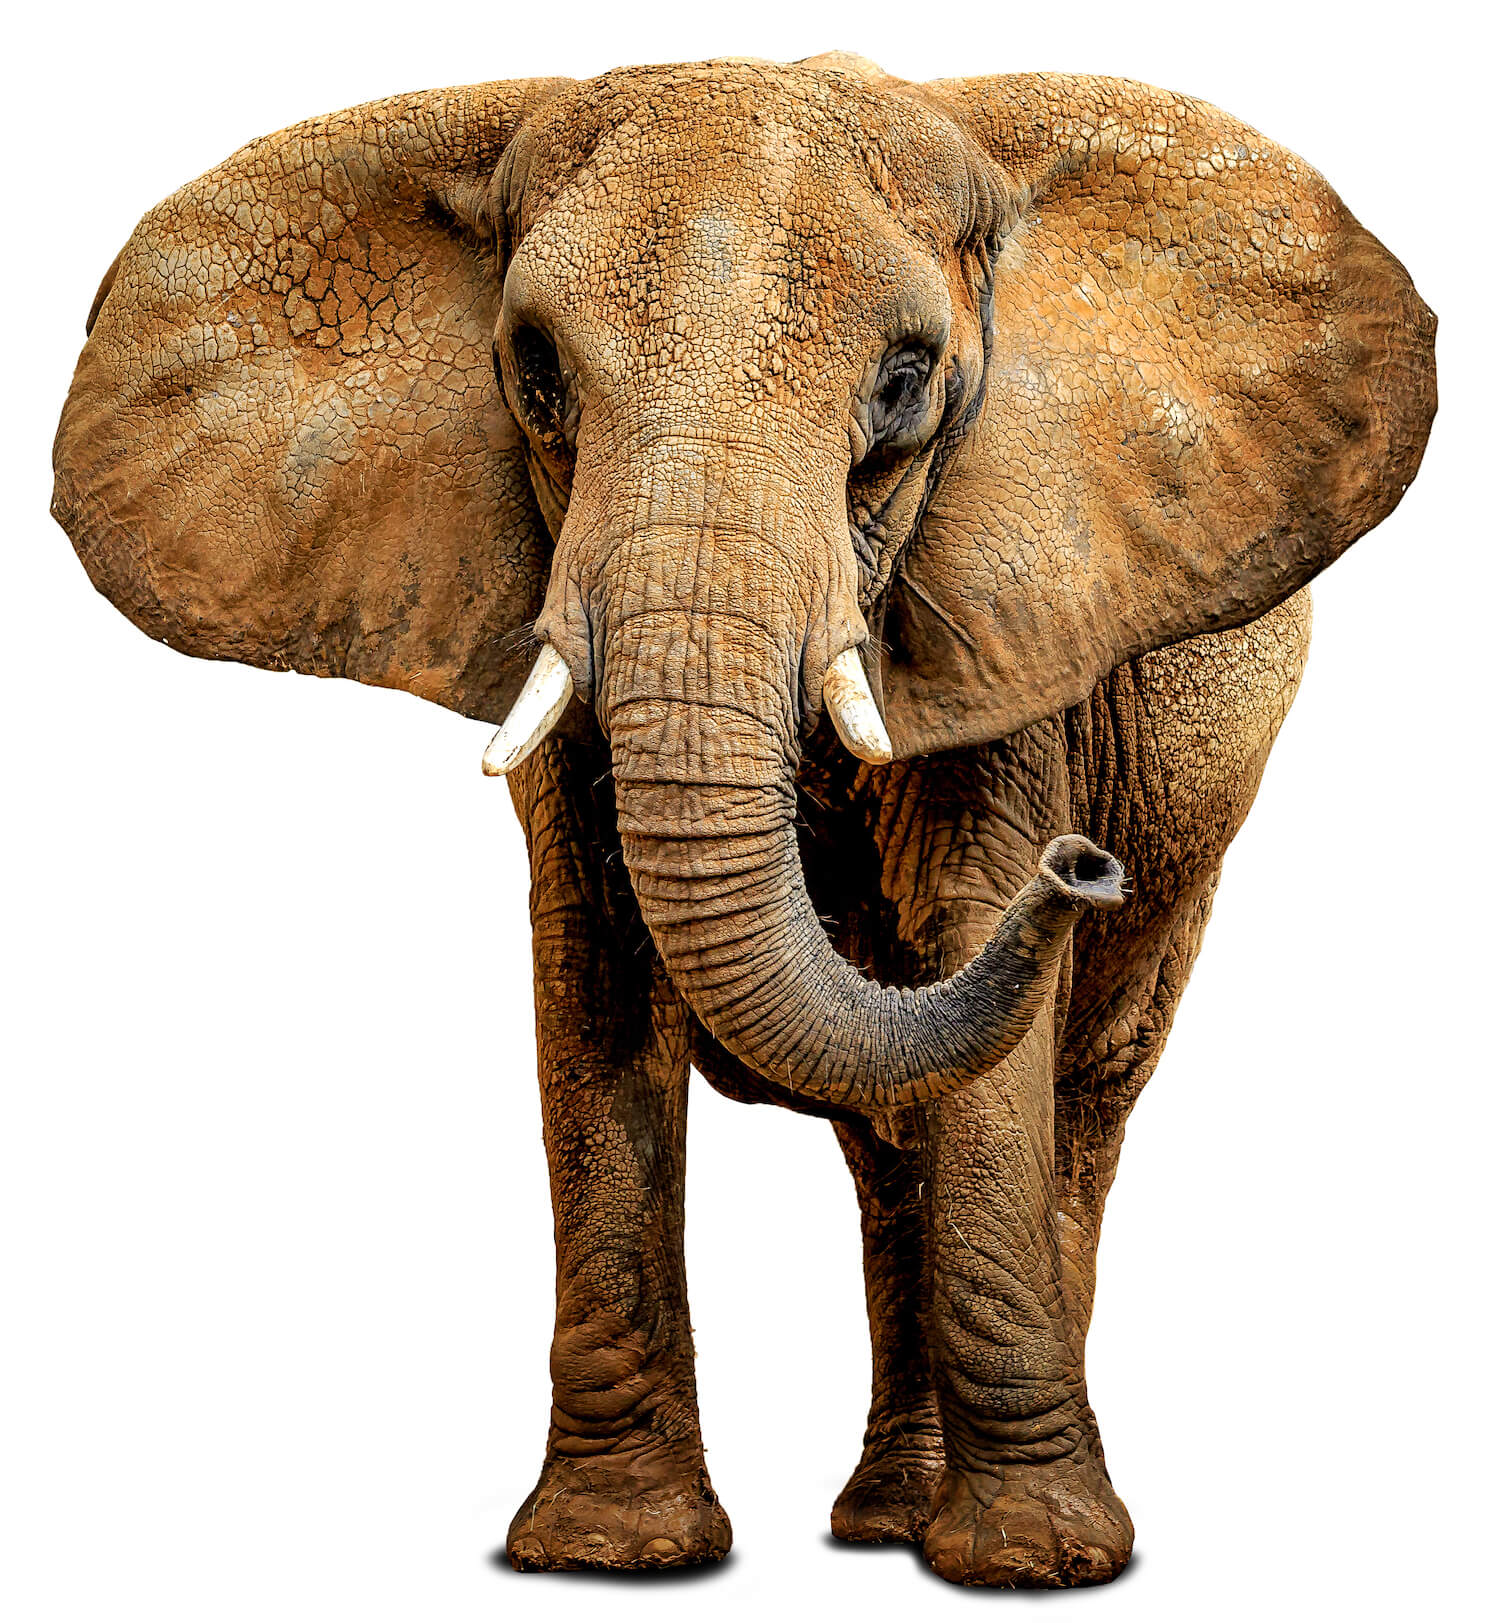 North America's Oldest African Elephant